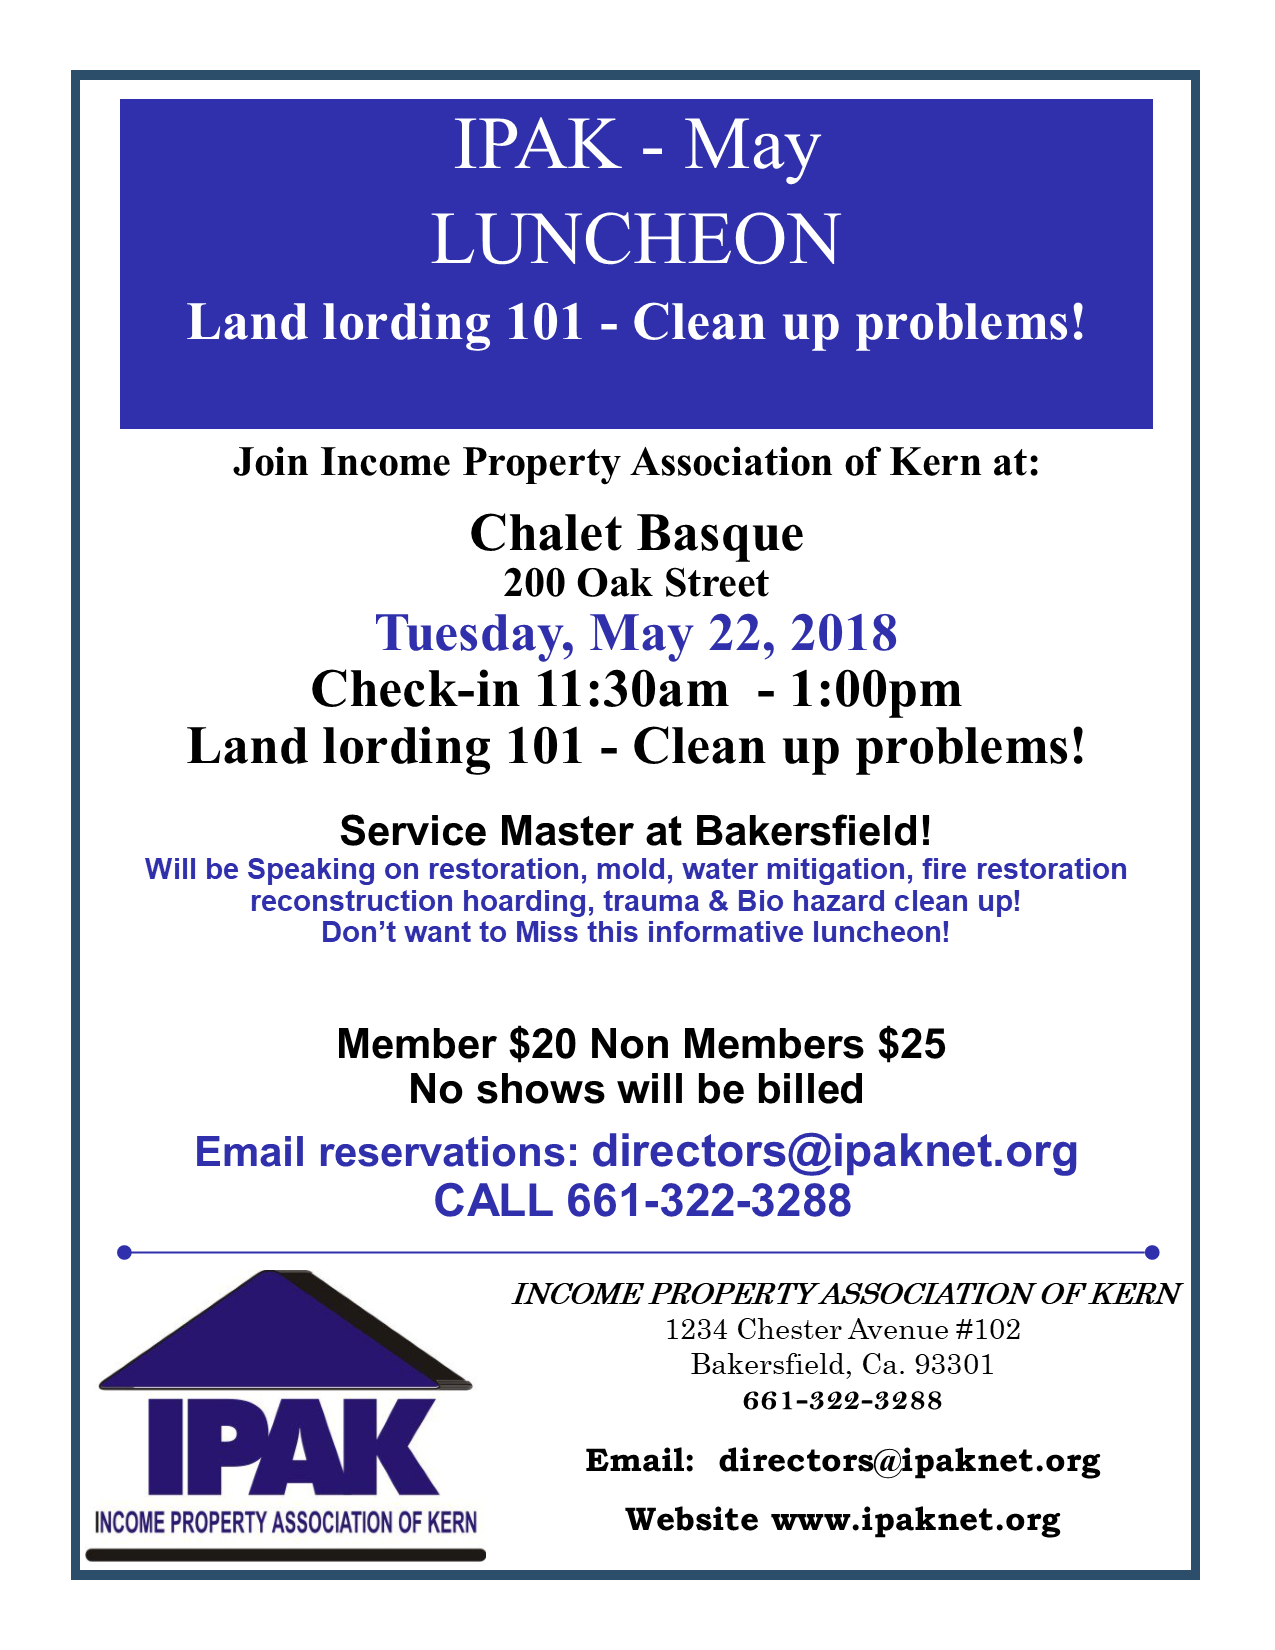 Marti Harbin May Luncheon